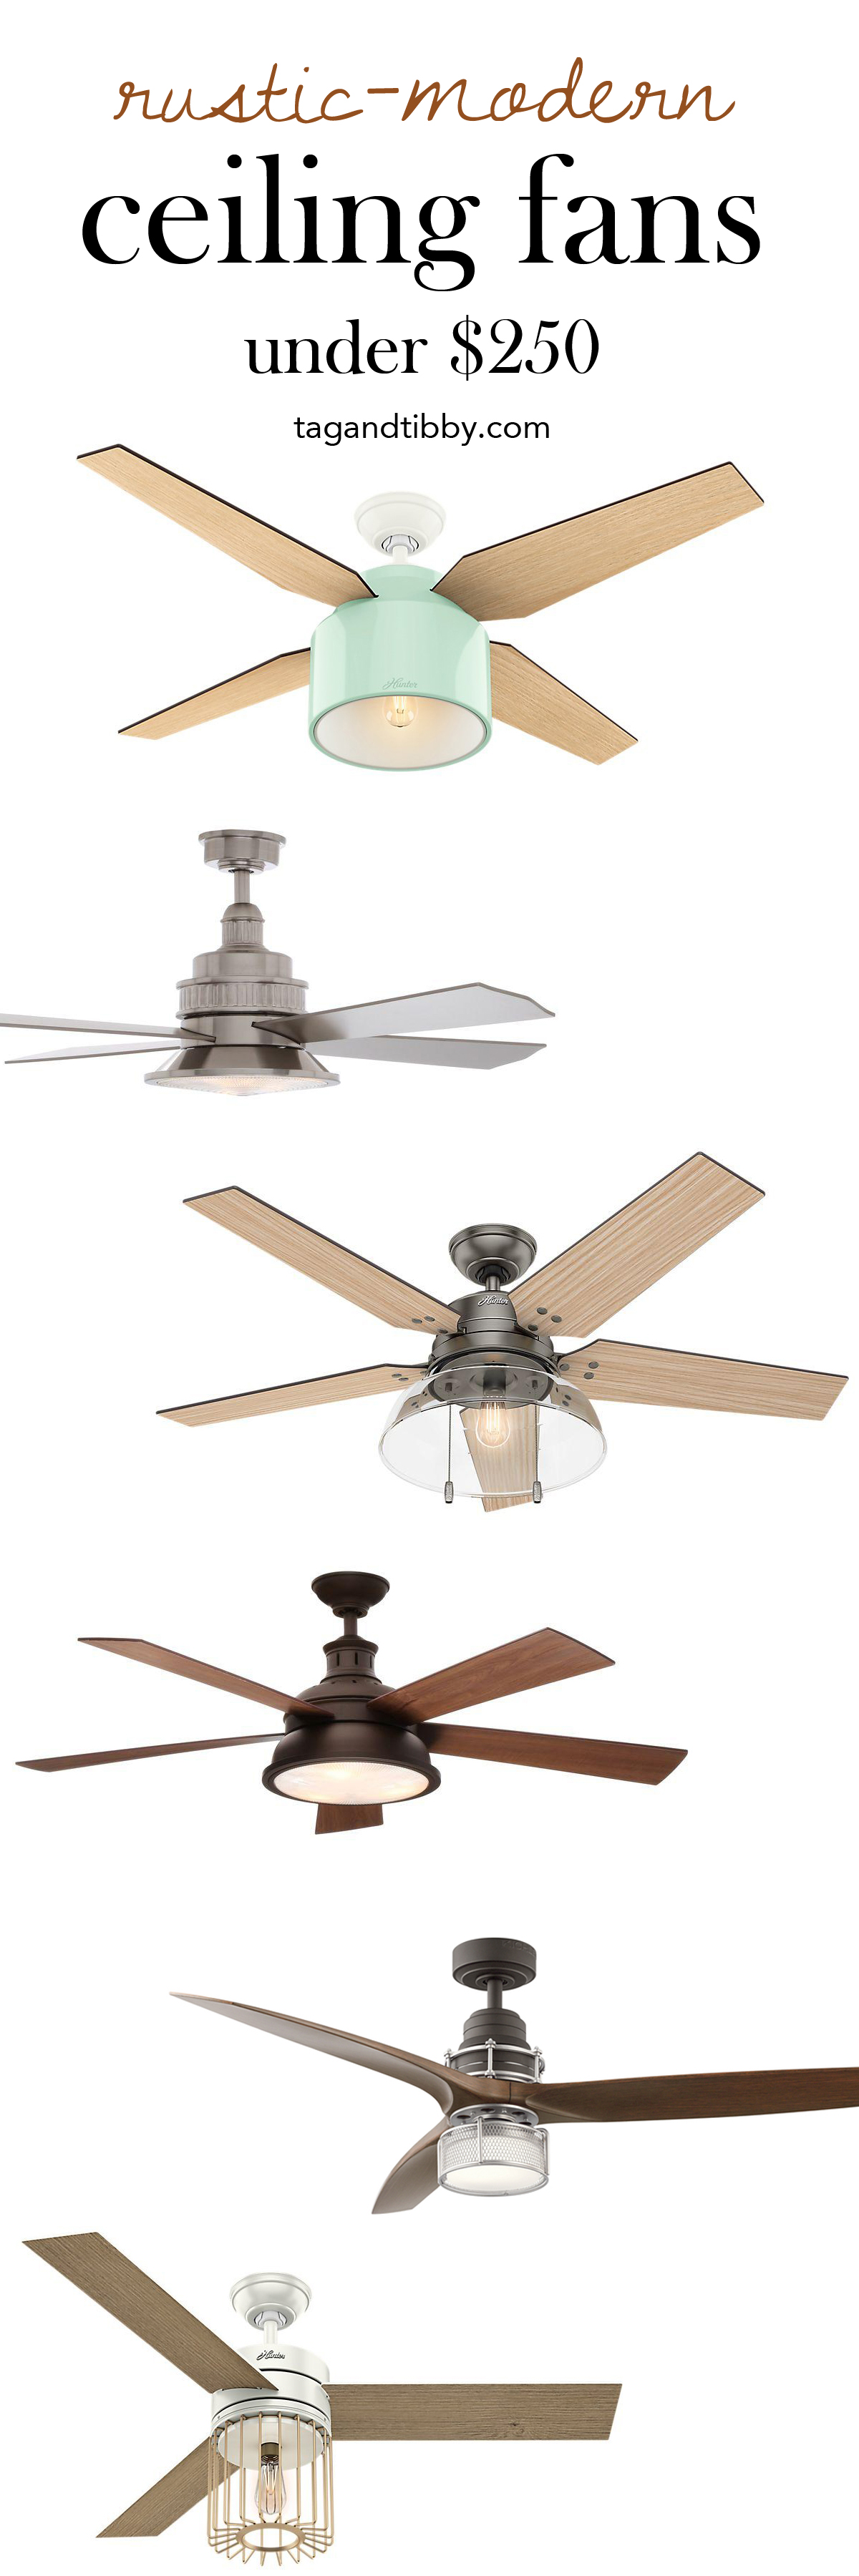 Fave Rustic-Modern Ceiling Fans for under $250